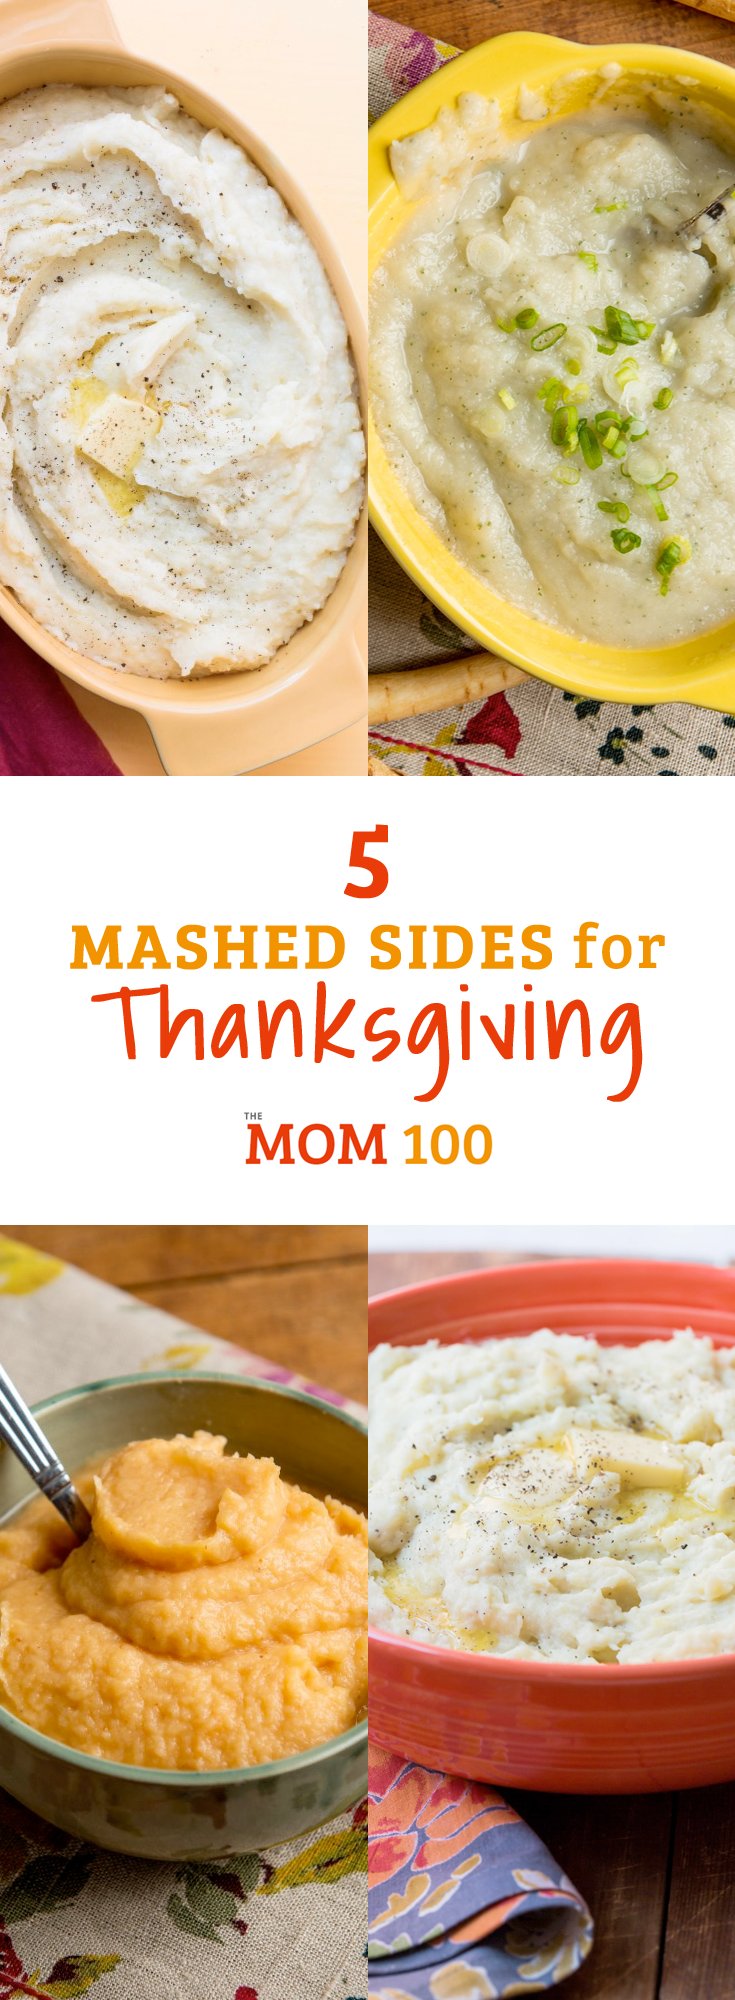 5 Mashed Sides for Thanksgiving: Yes, you still need mashed potatoes on the table, but it\'s nice to change things up by adding another mashed root vegetable